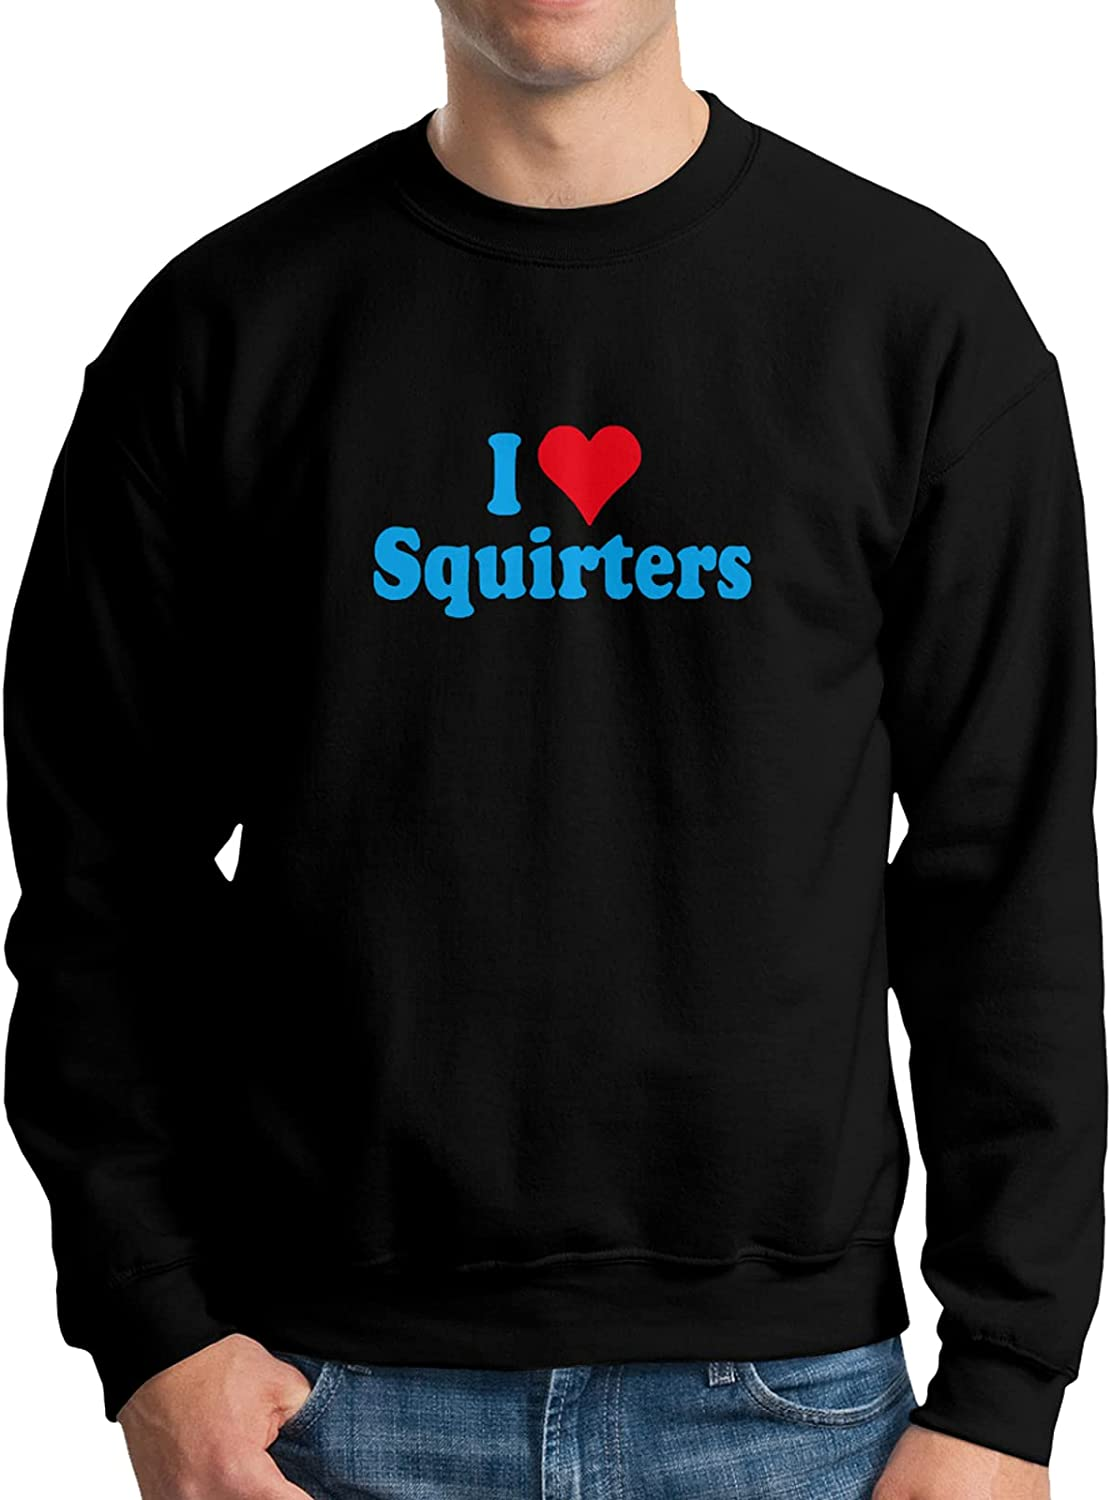 I Love Squirters Torso 2021 Silhouette Sweatshirt Sl Sports Mens Long Limited Special Price